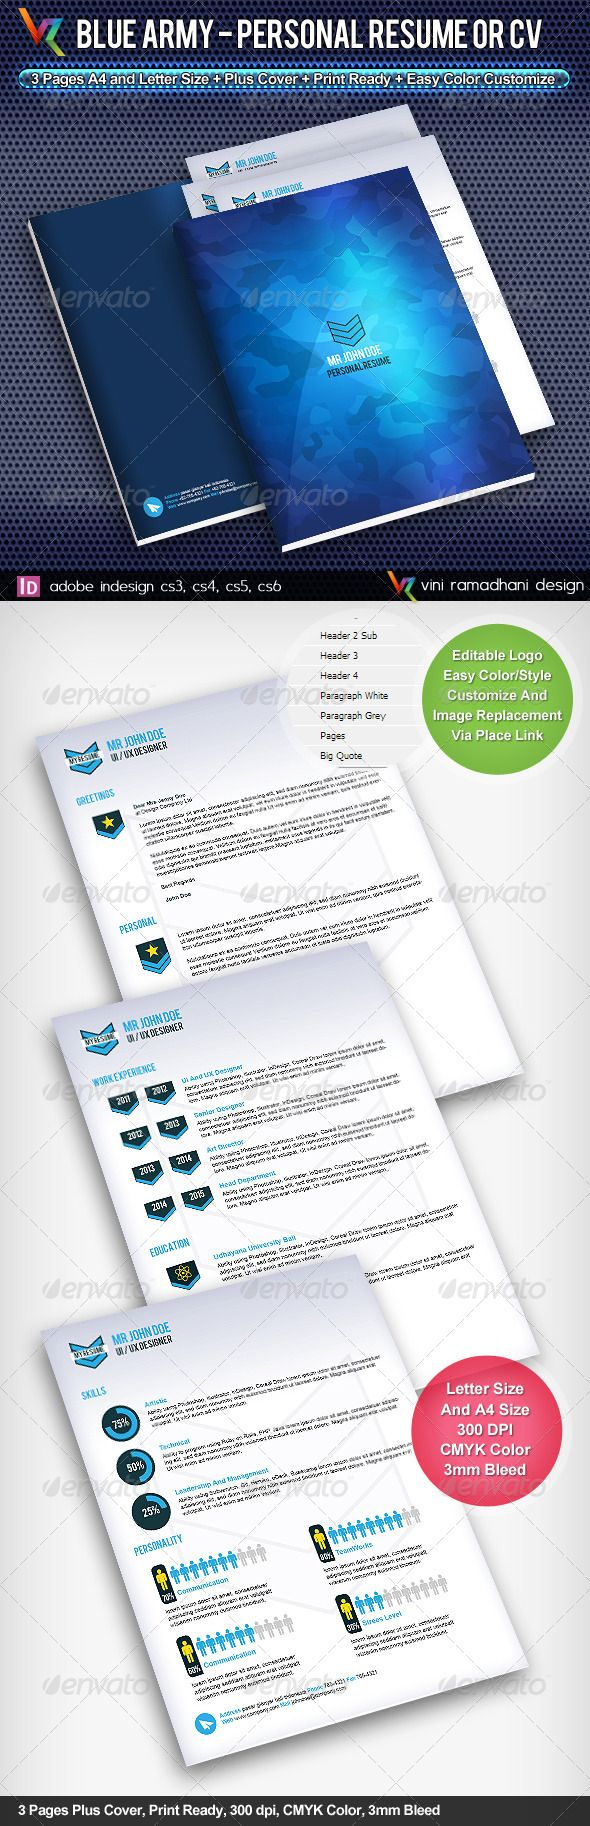 standard resume font stonevoices co standard resume font 1517